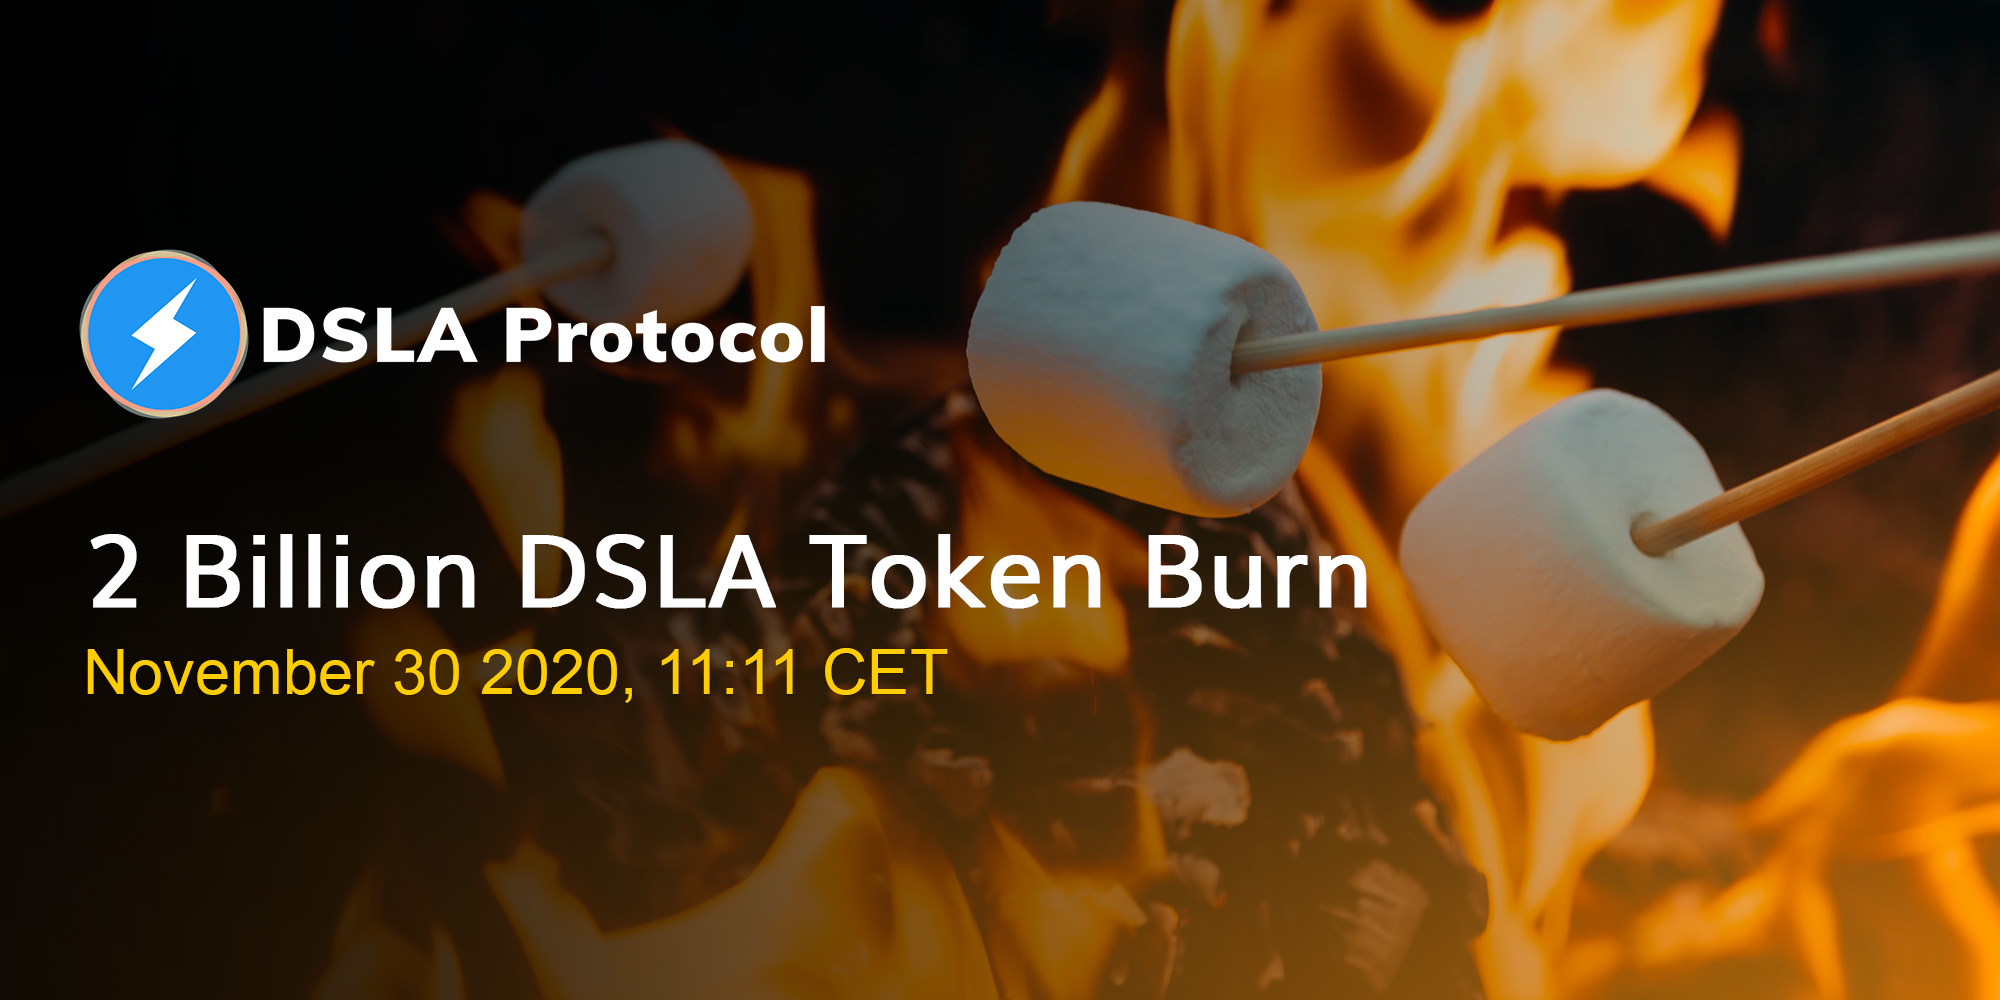 2 Billion DSLA Token Burn Event